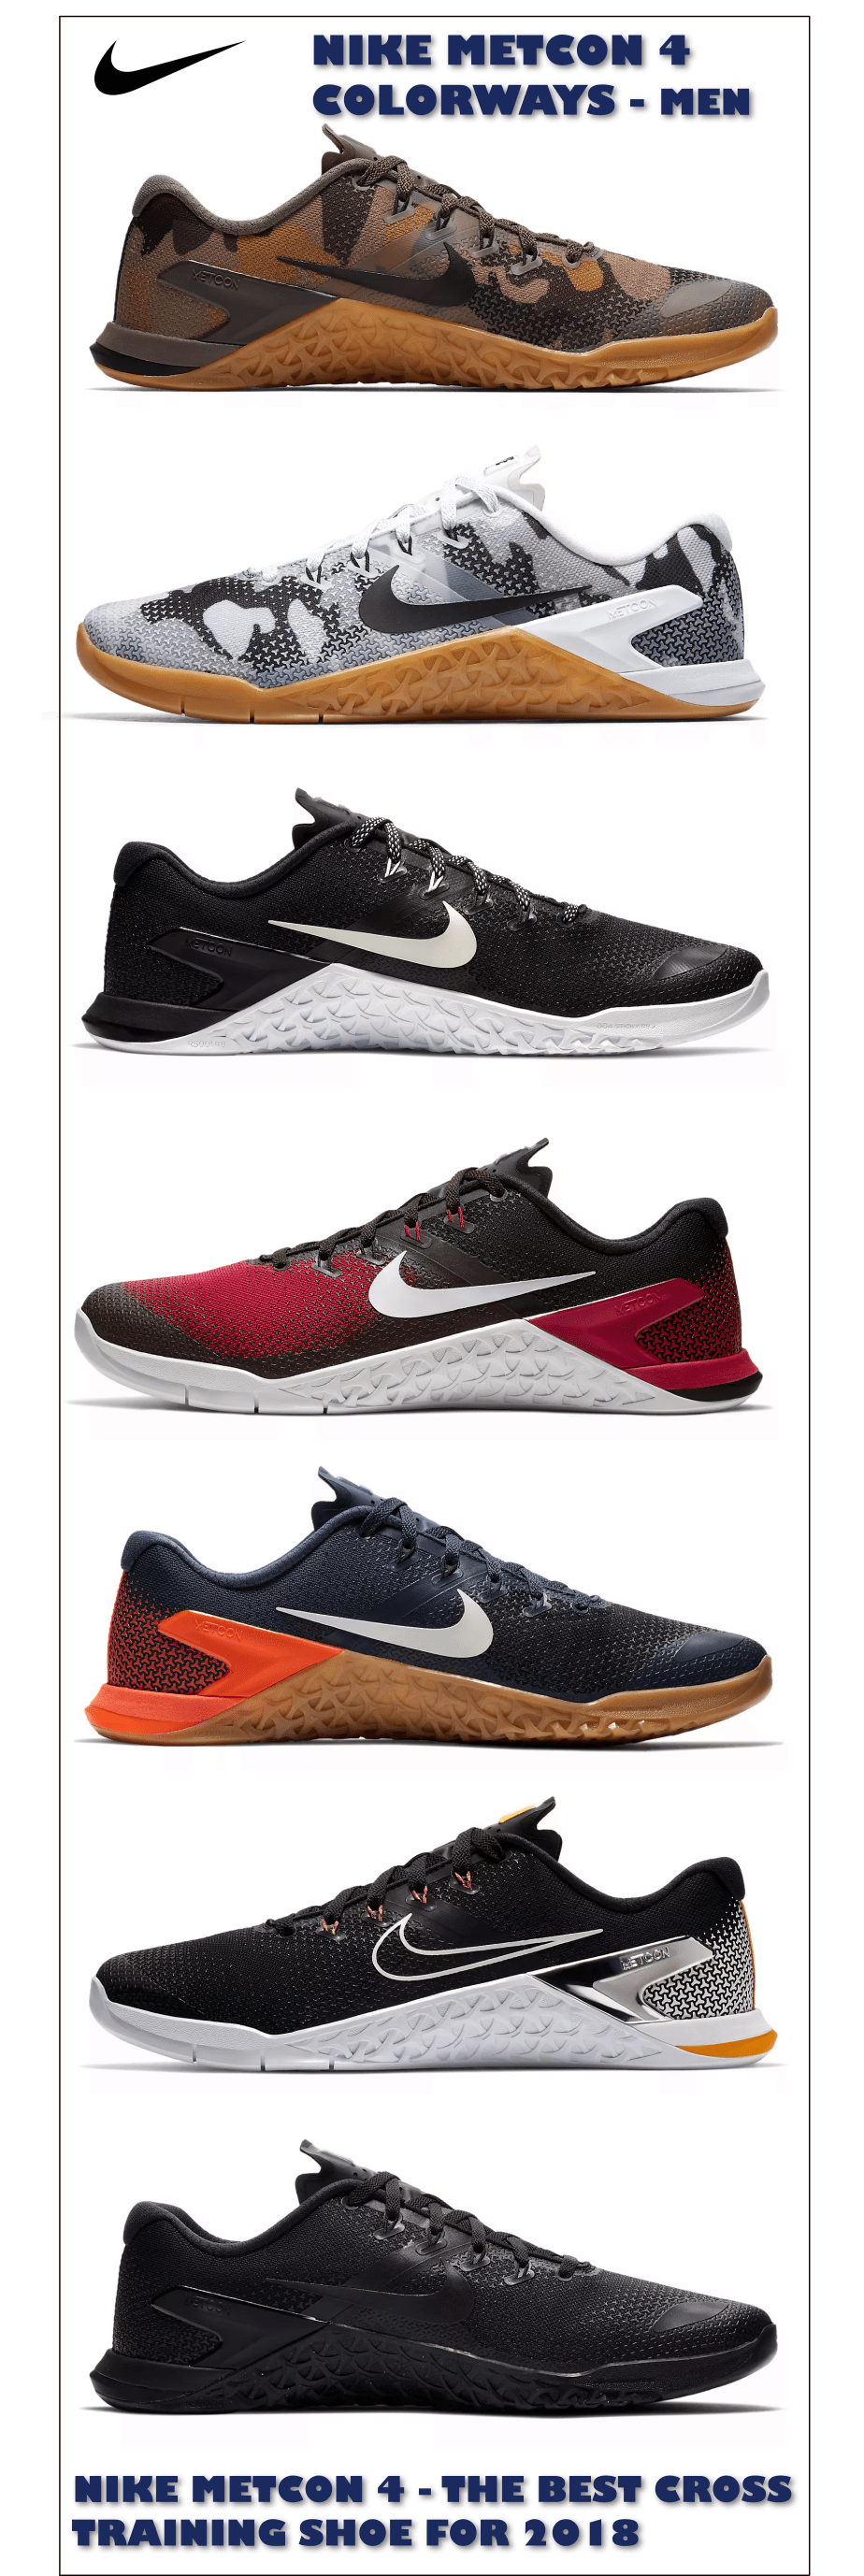 MidlifeCrossfit All At Metcon Colorways Fit 4 Nike Men vm80OnNw